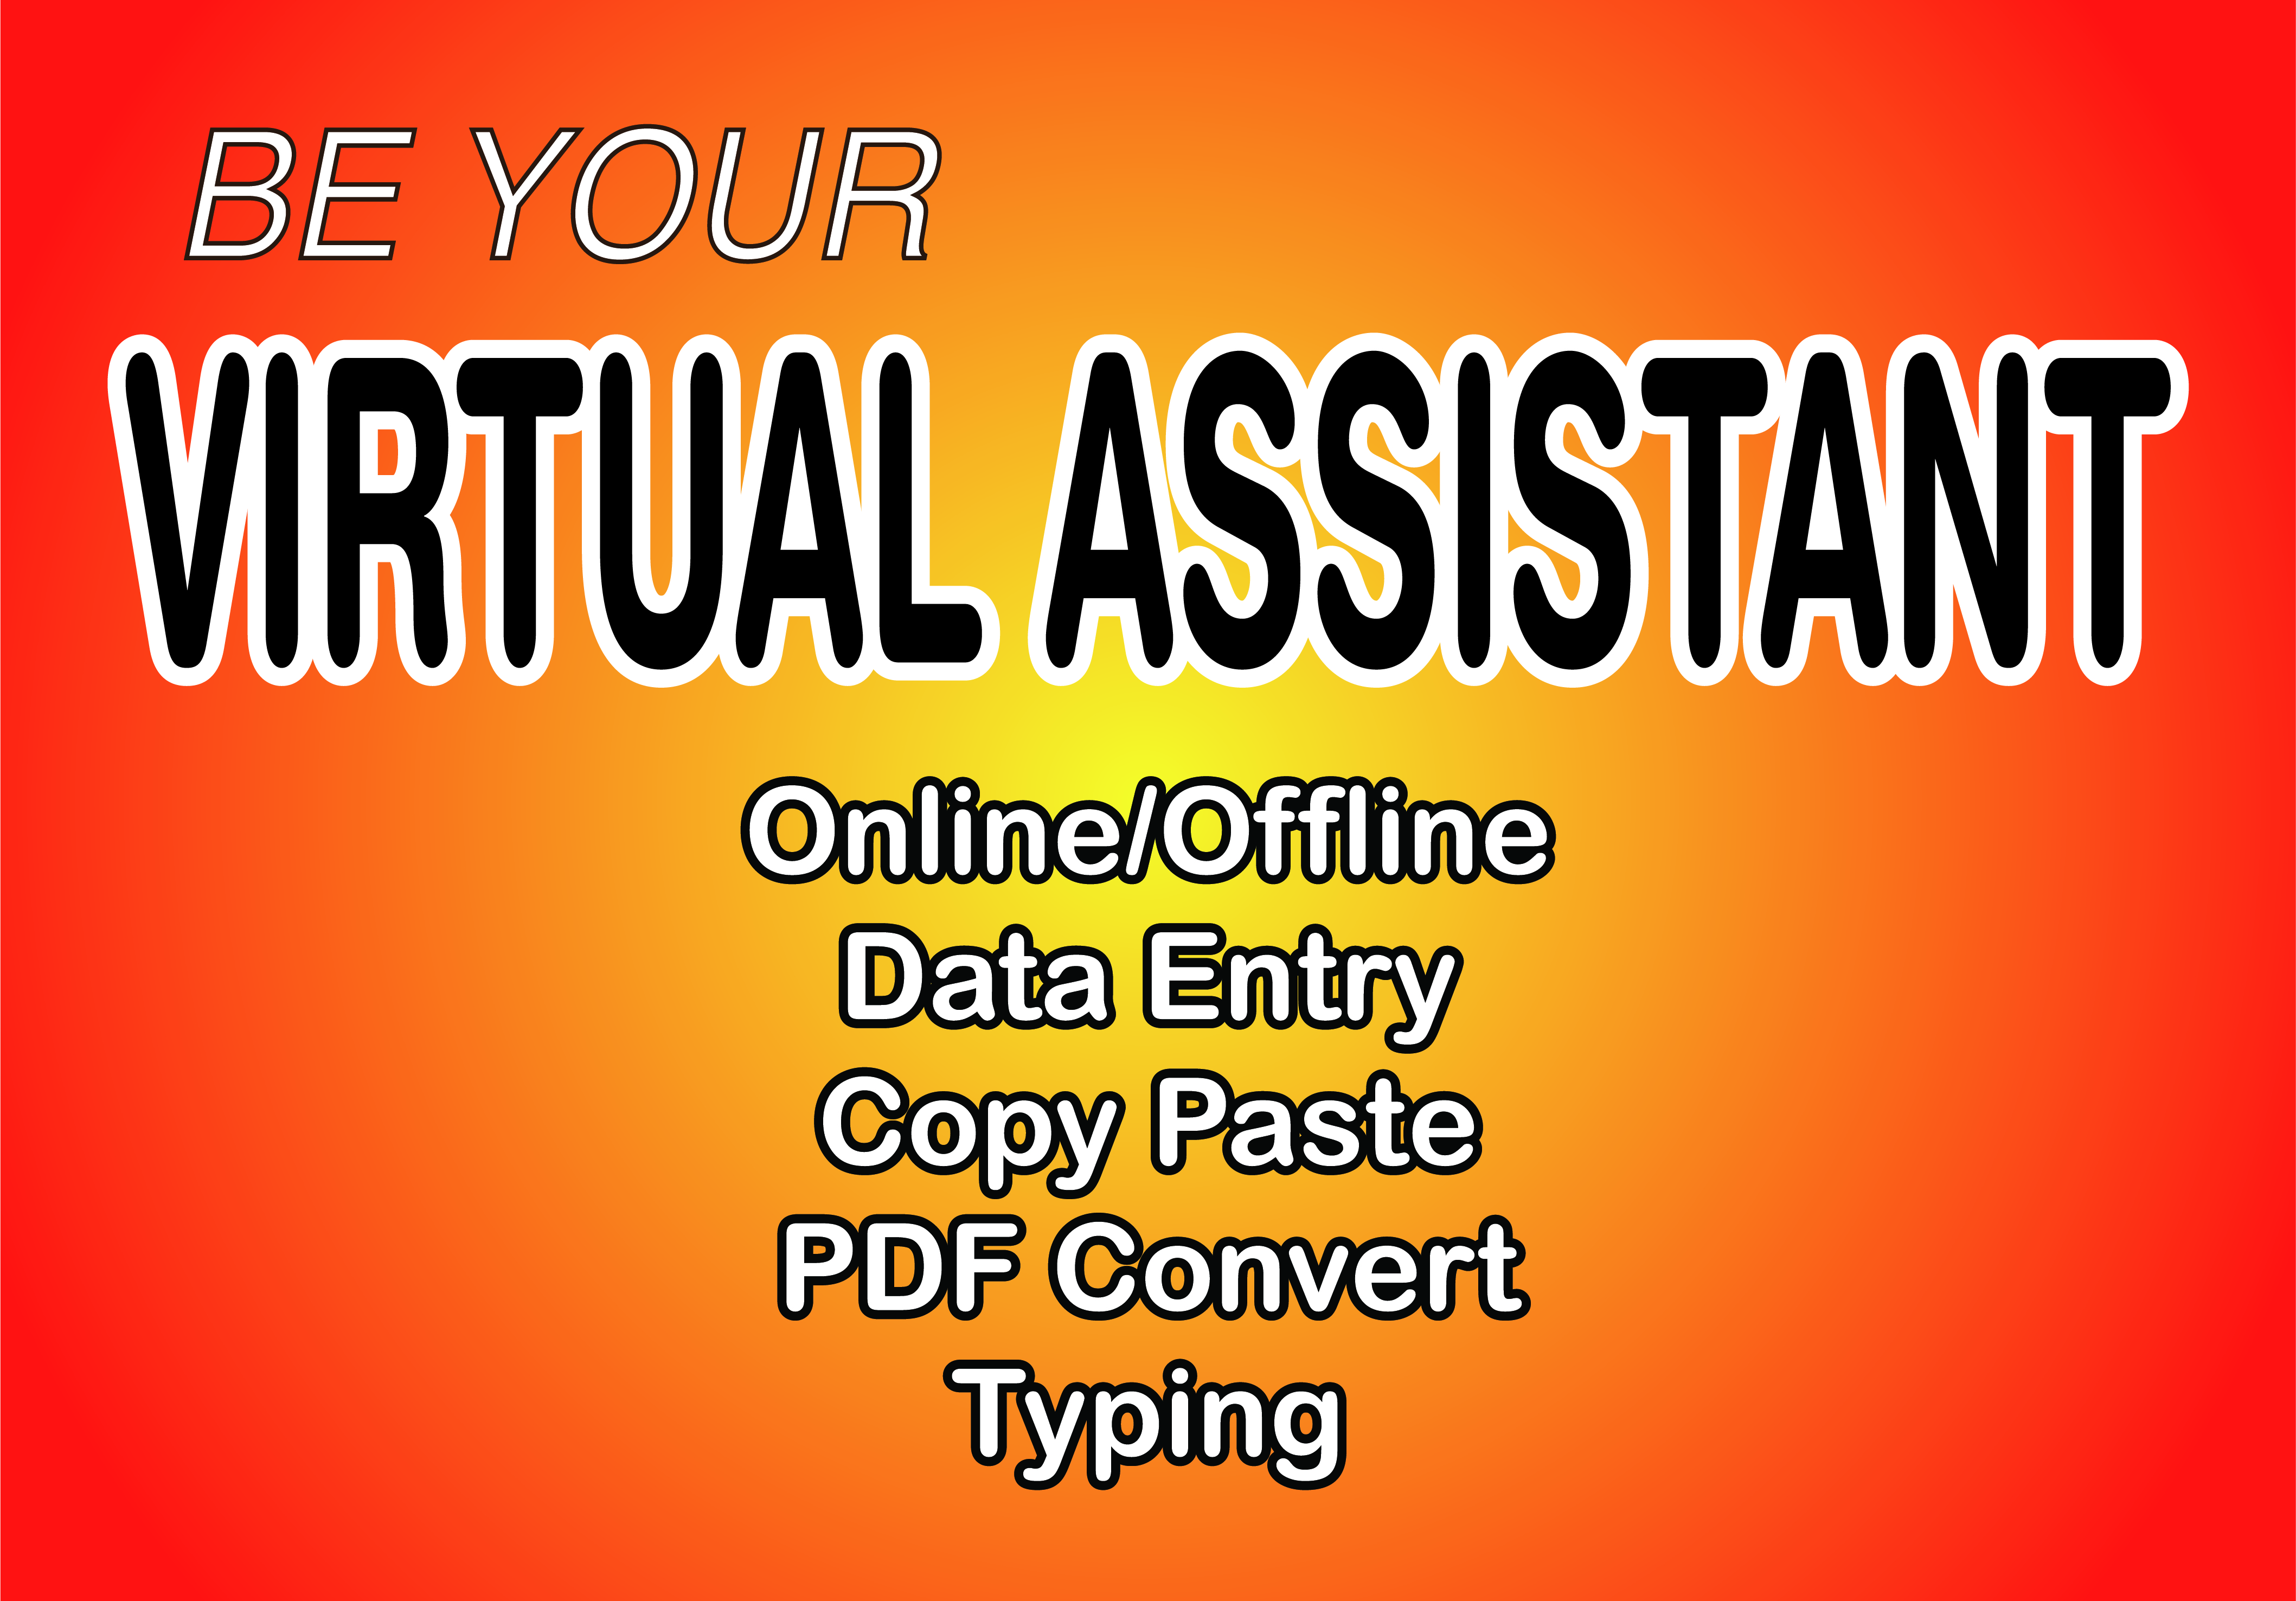 I will be your virtual assistant for data entry and copy paste